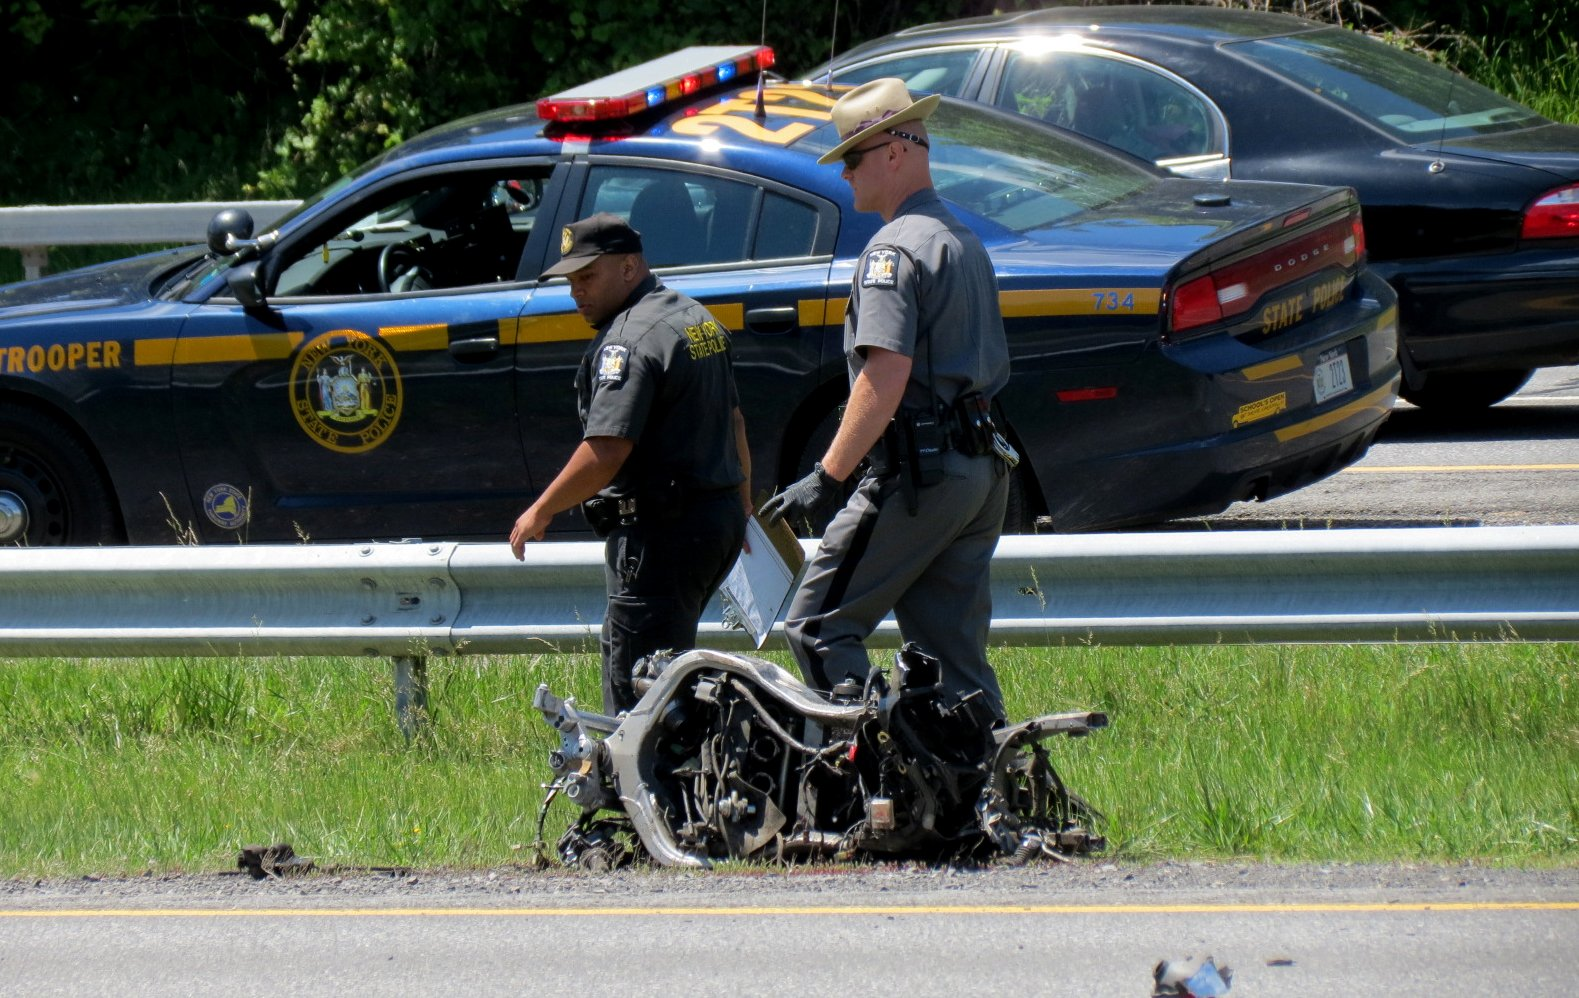 Virginia Traffic Accident Reports >> Thruway reopened at exits 21A-23 after fatal motorcycle crash - Times Union